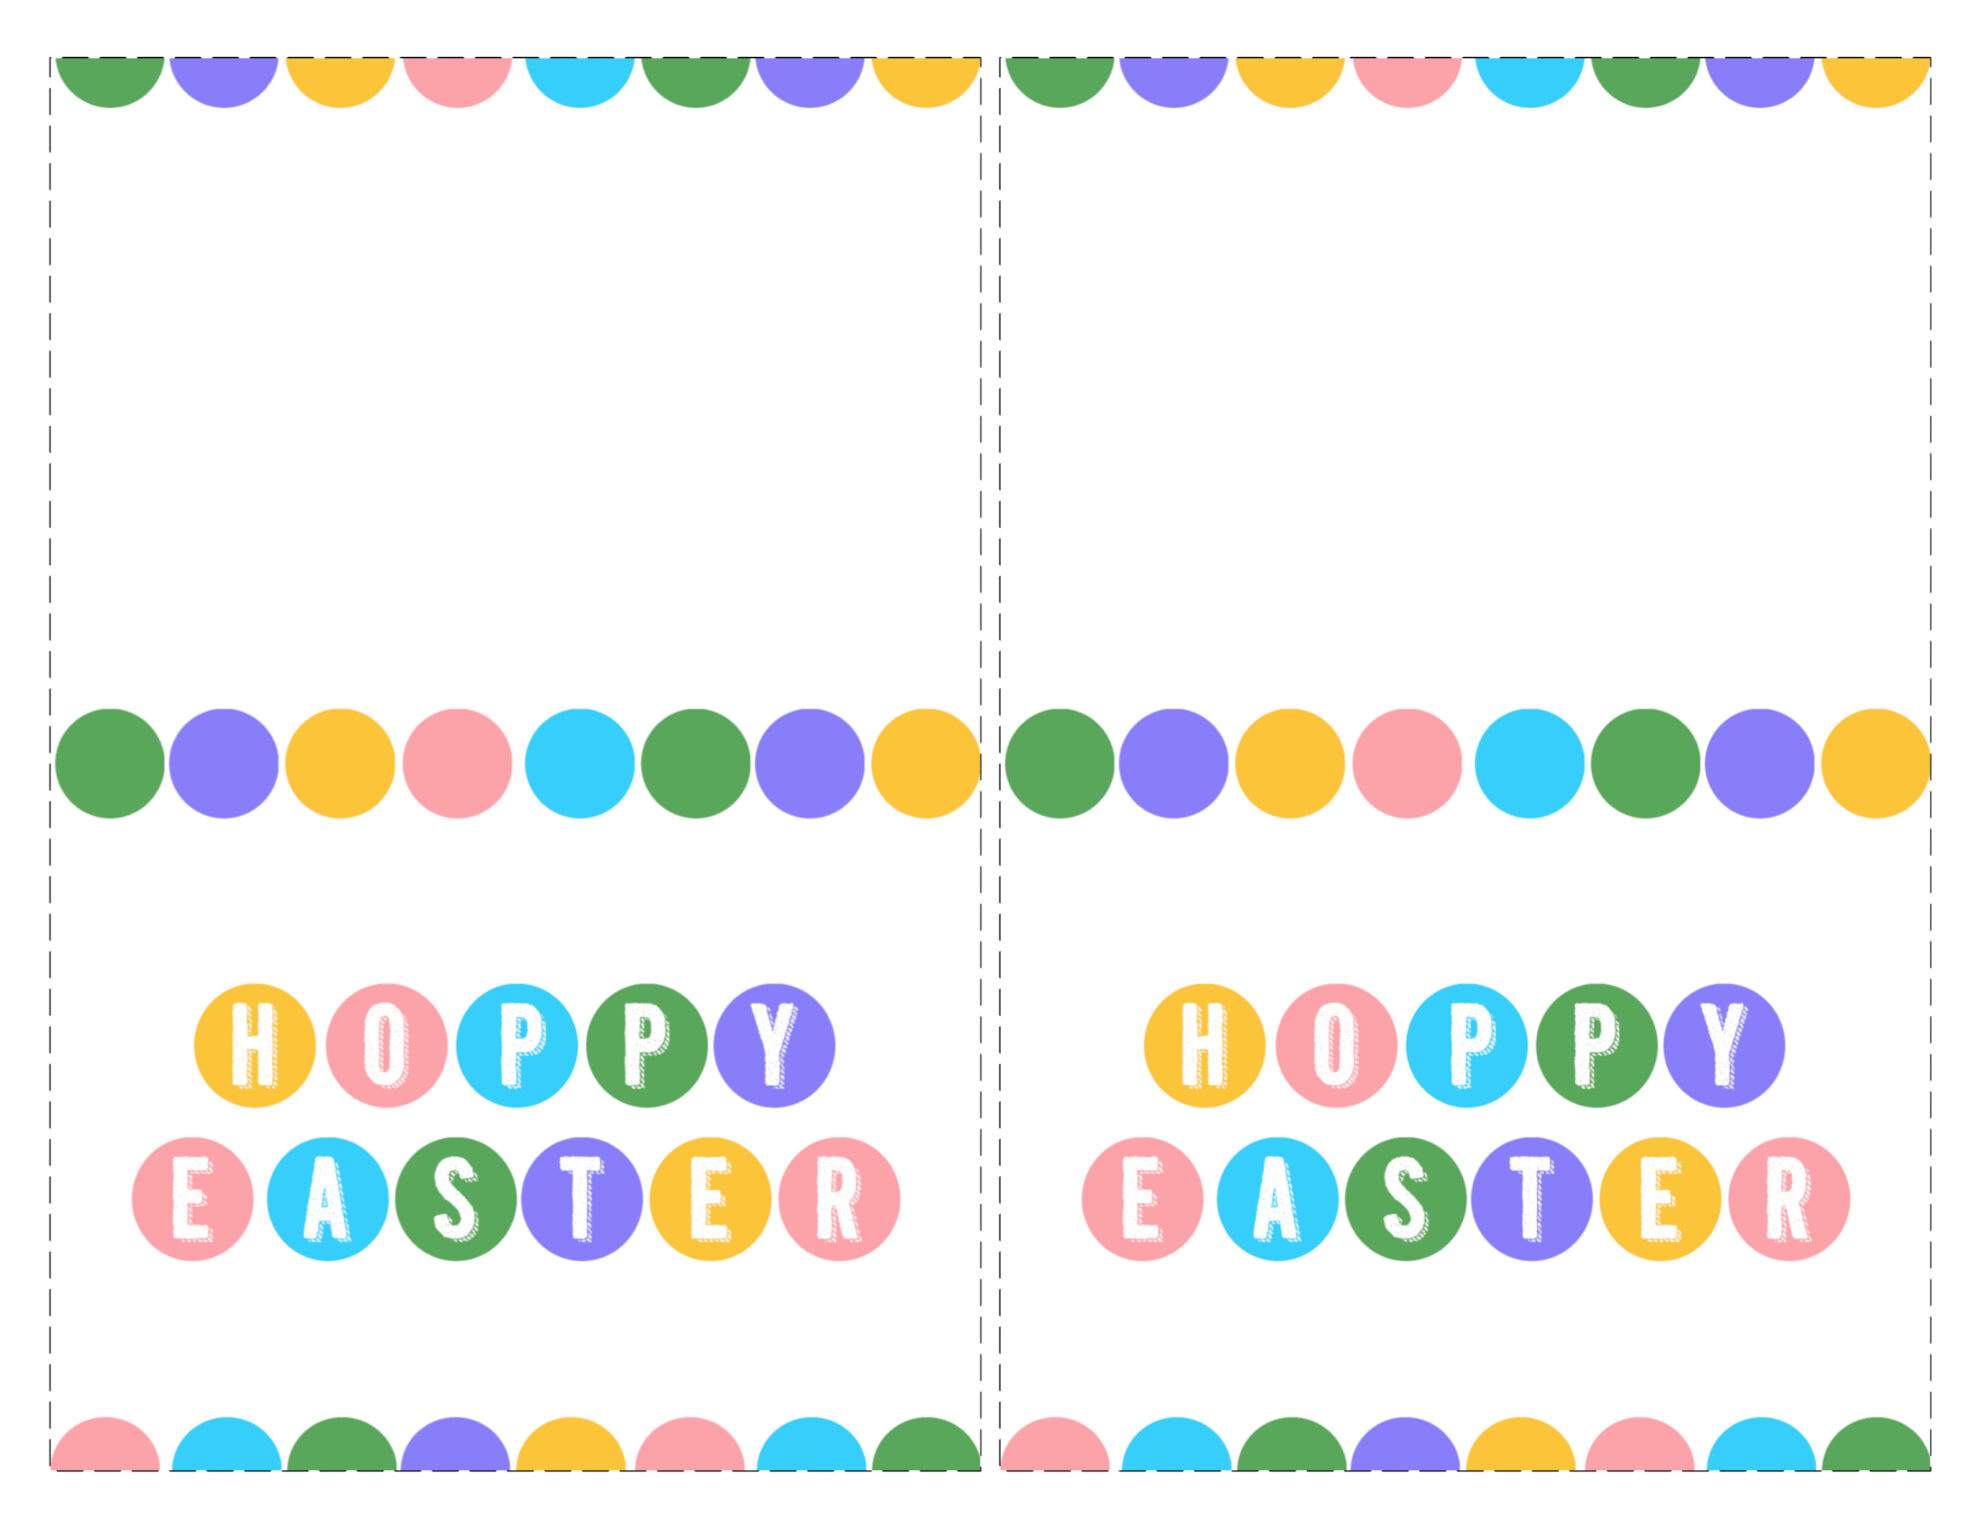 Impeccable image with easter card printable